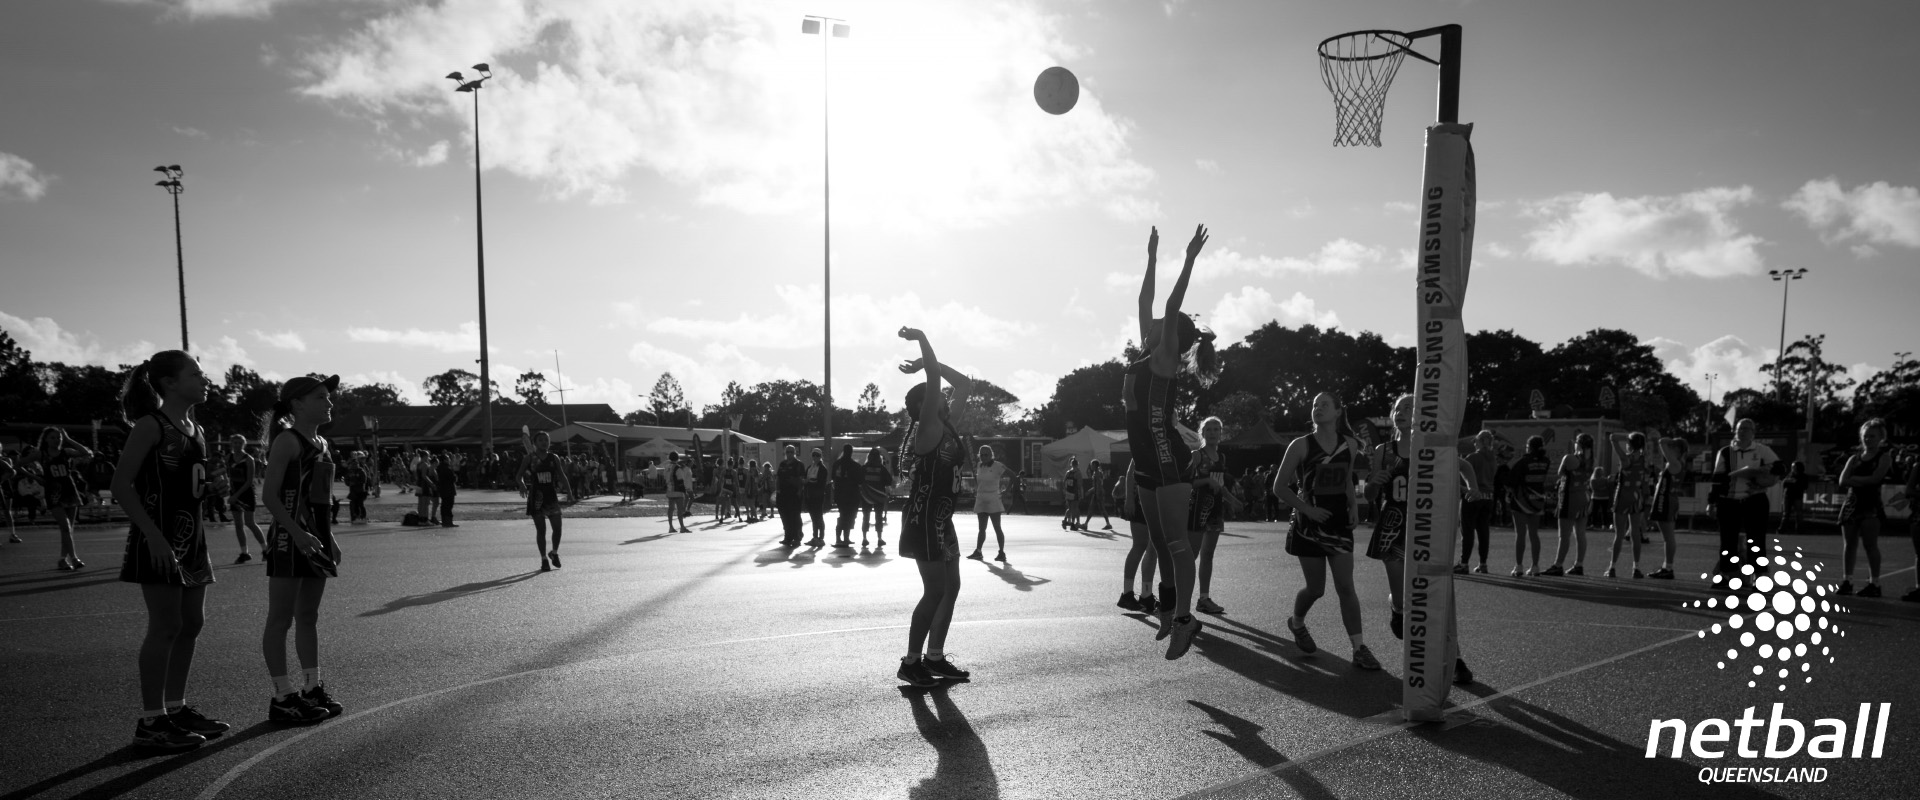 Netball QLD Footer